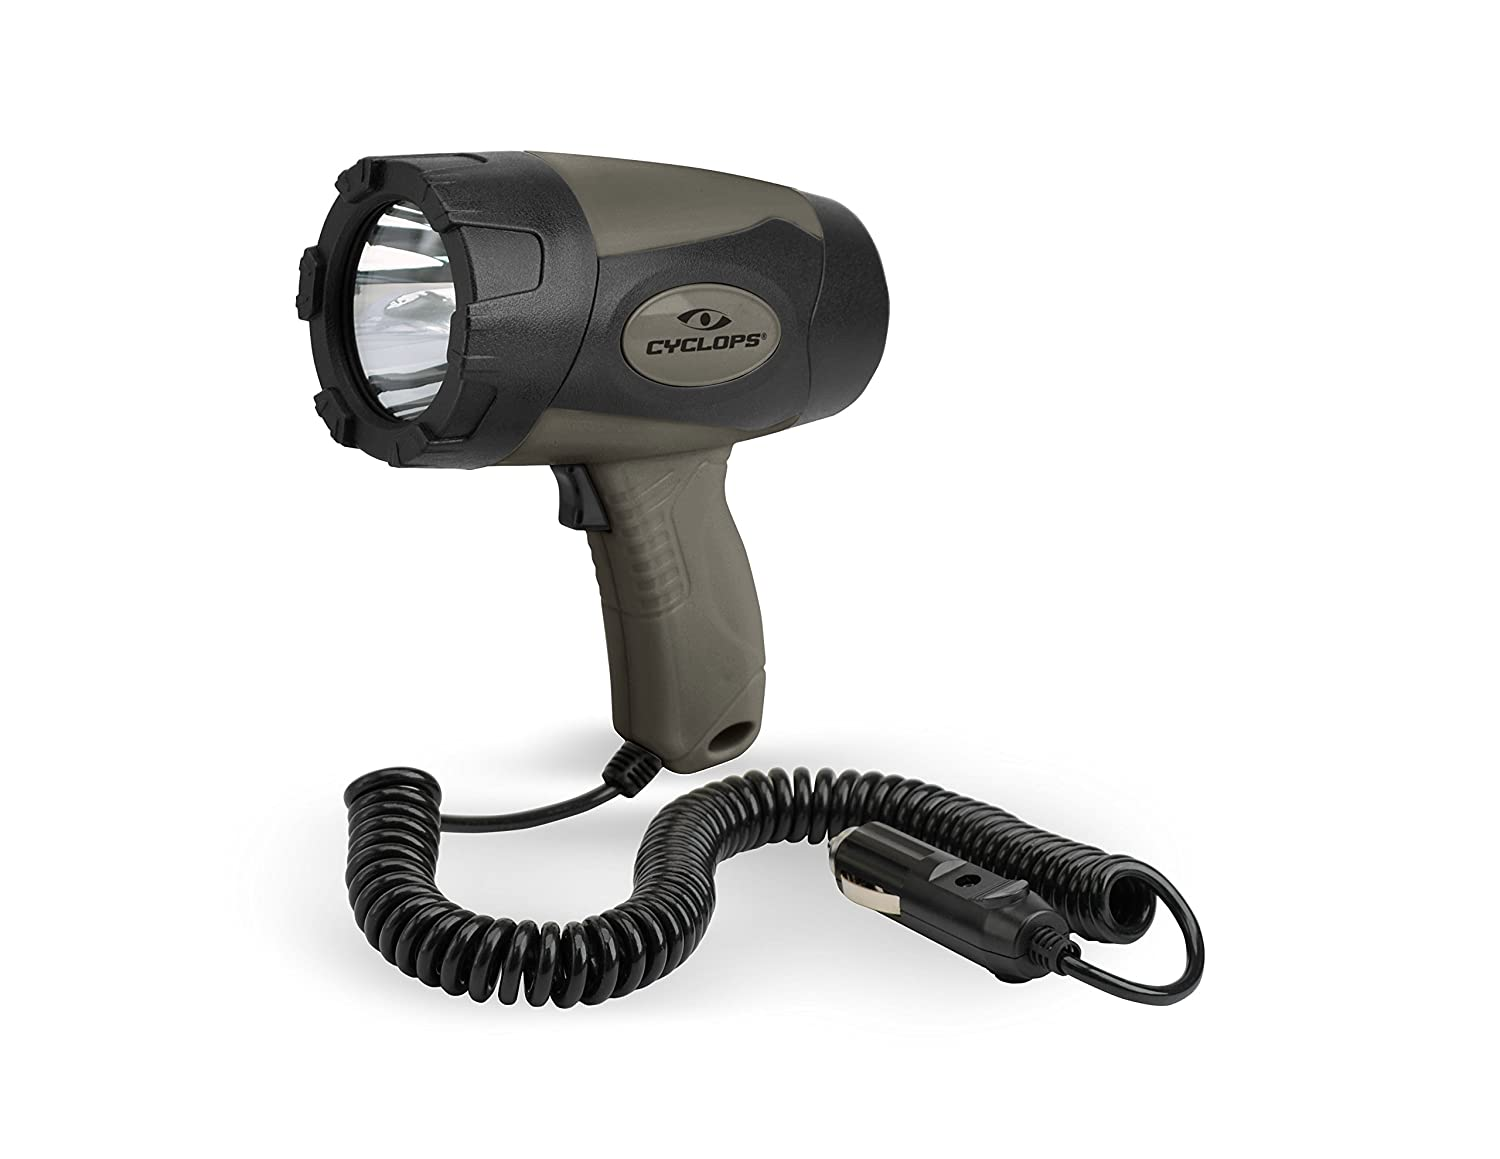 Cyclops CYC-5WS12V-TB 5-watt Led Direct 12-volt Spotlight, Tree Bark and Black